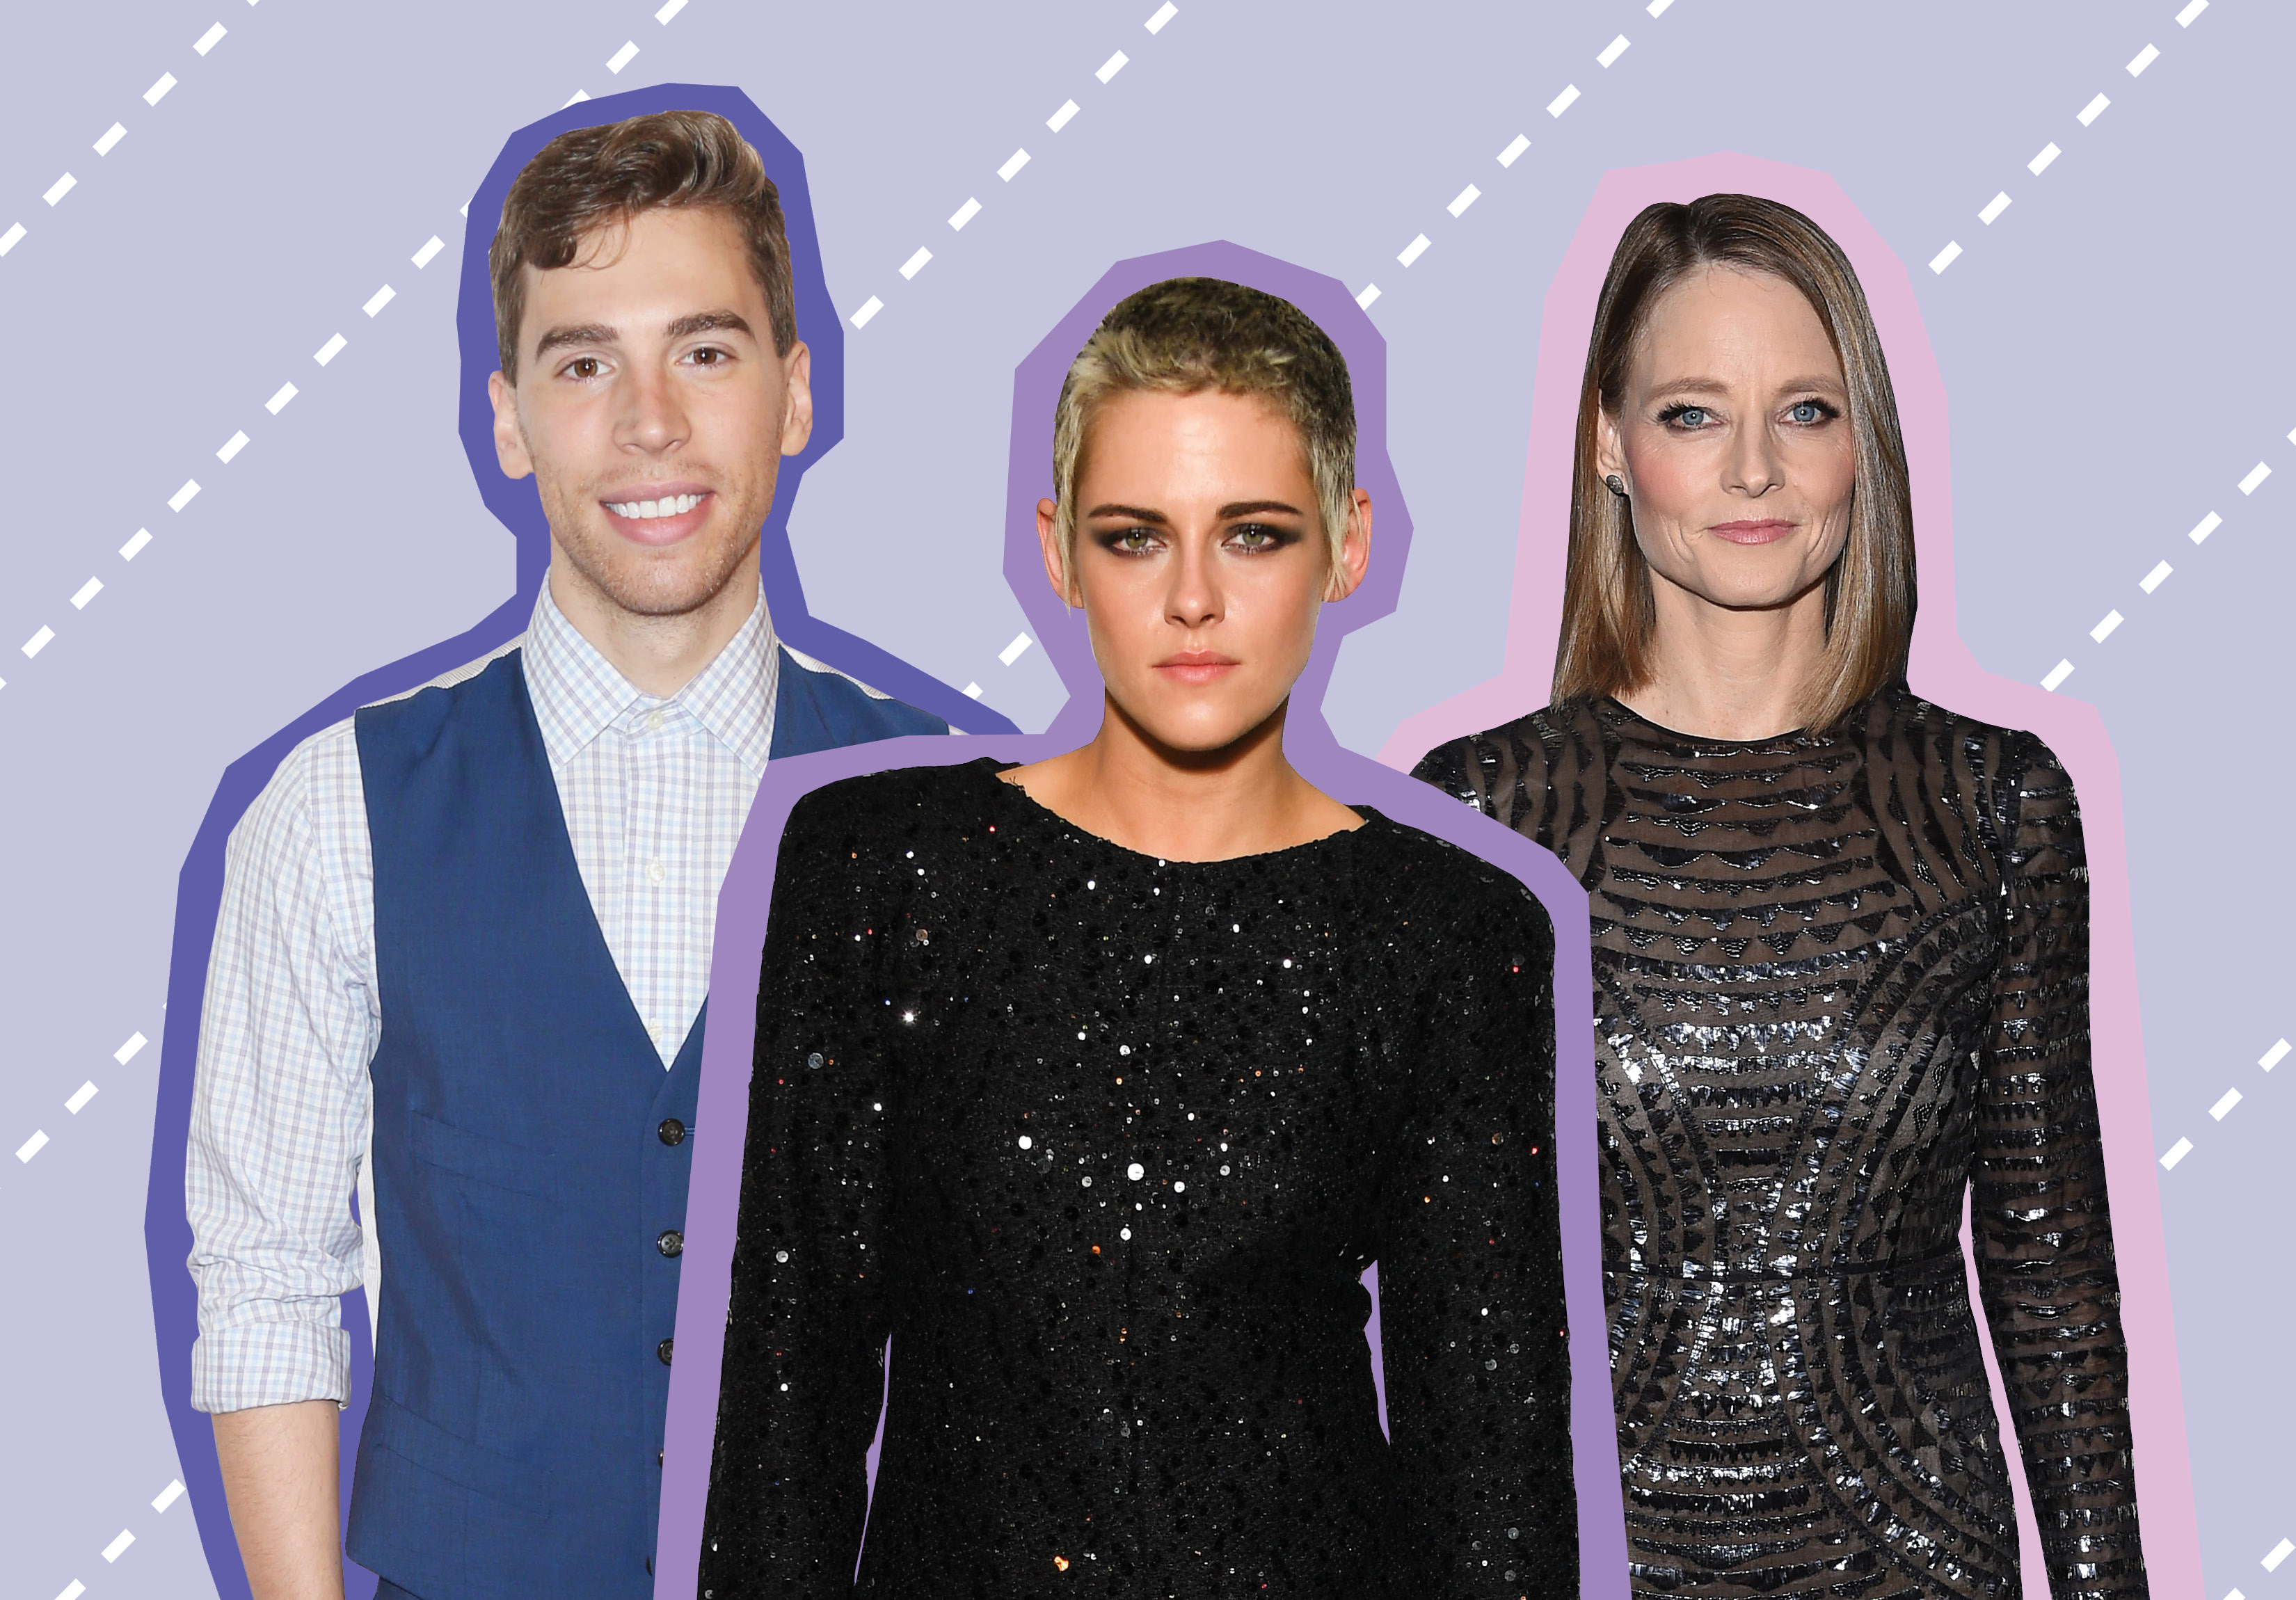 Why does the media assume queer celebrities are straight until proven otherwise?